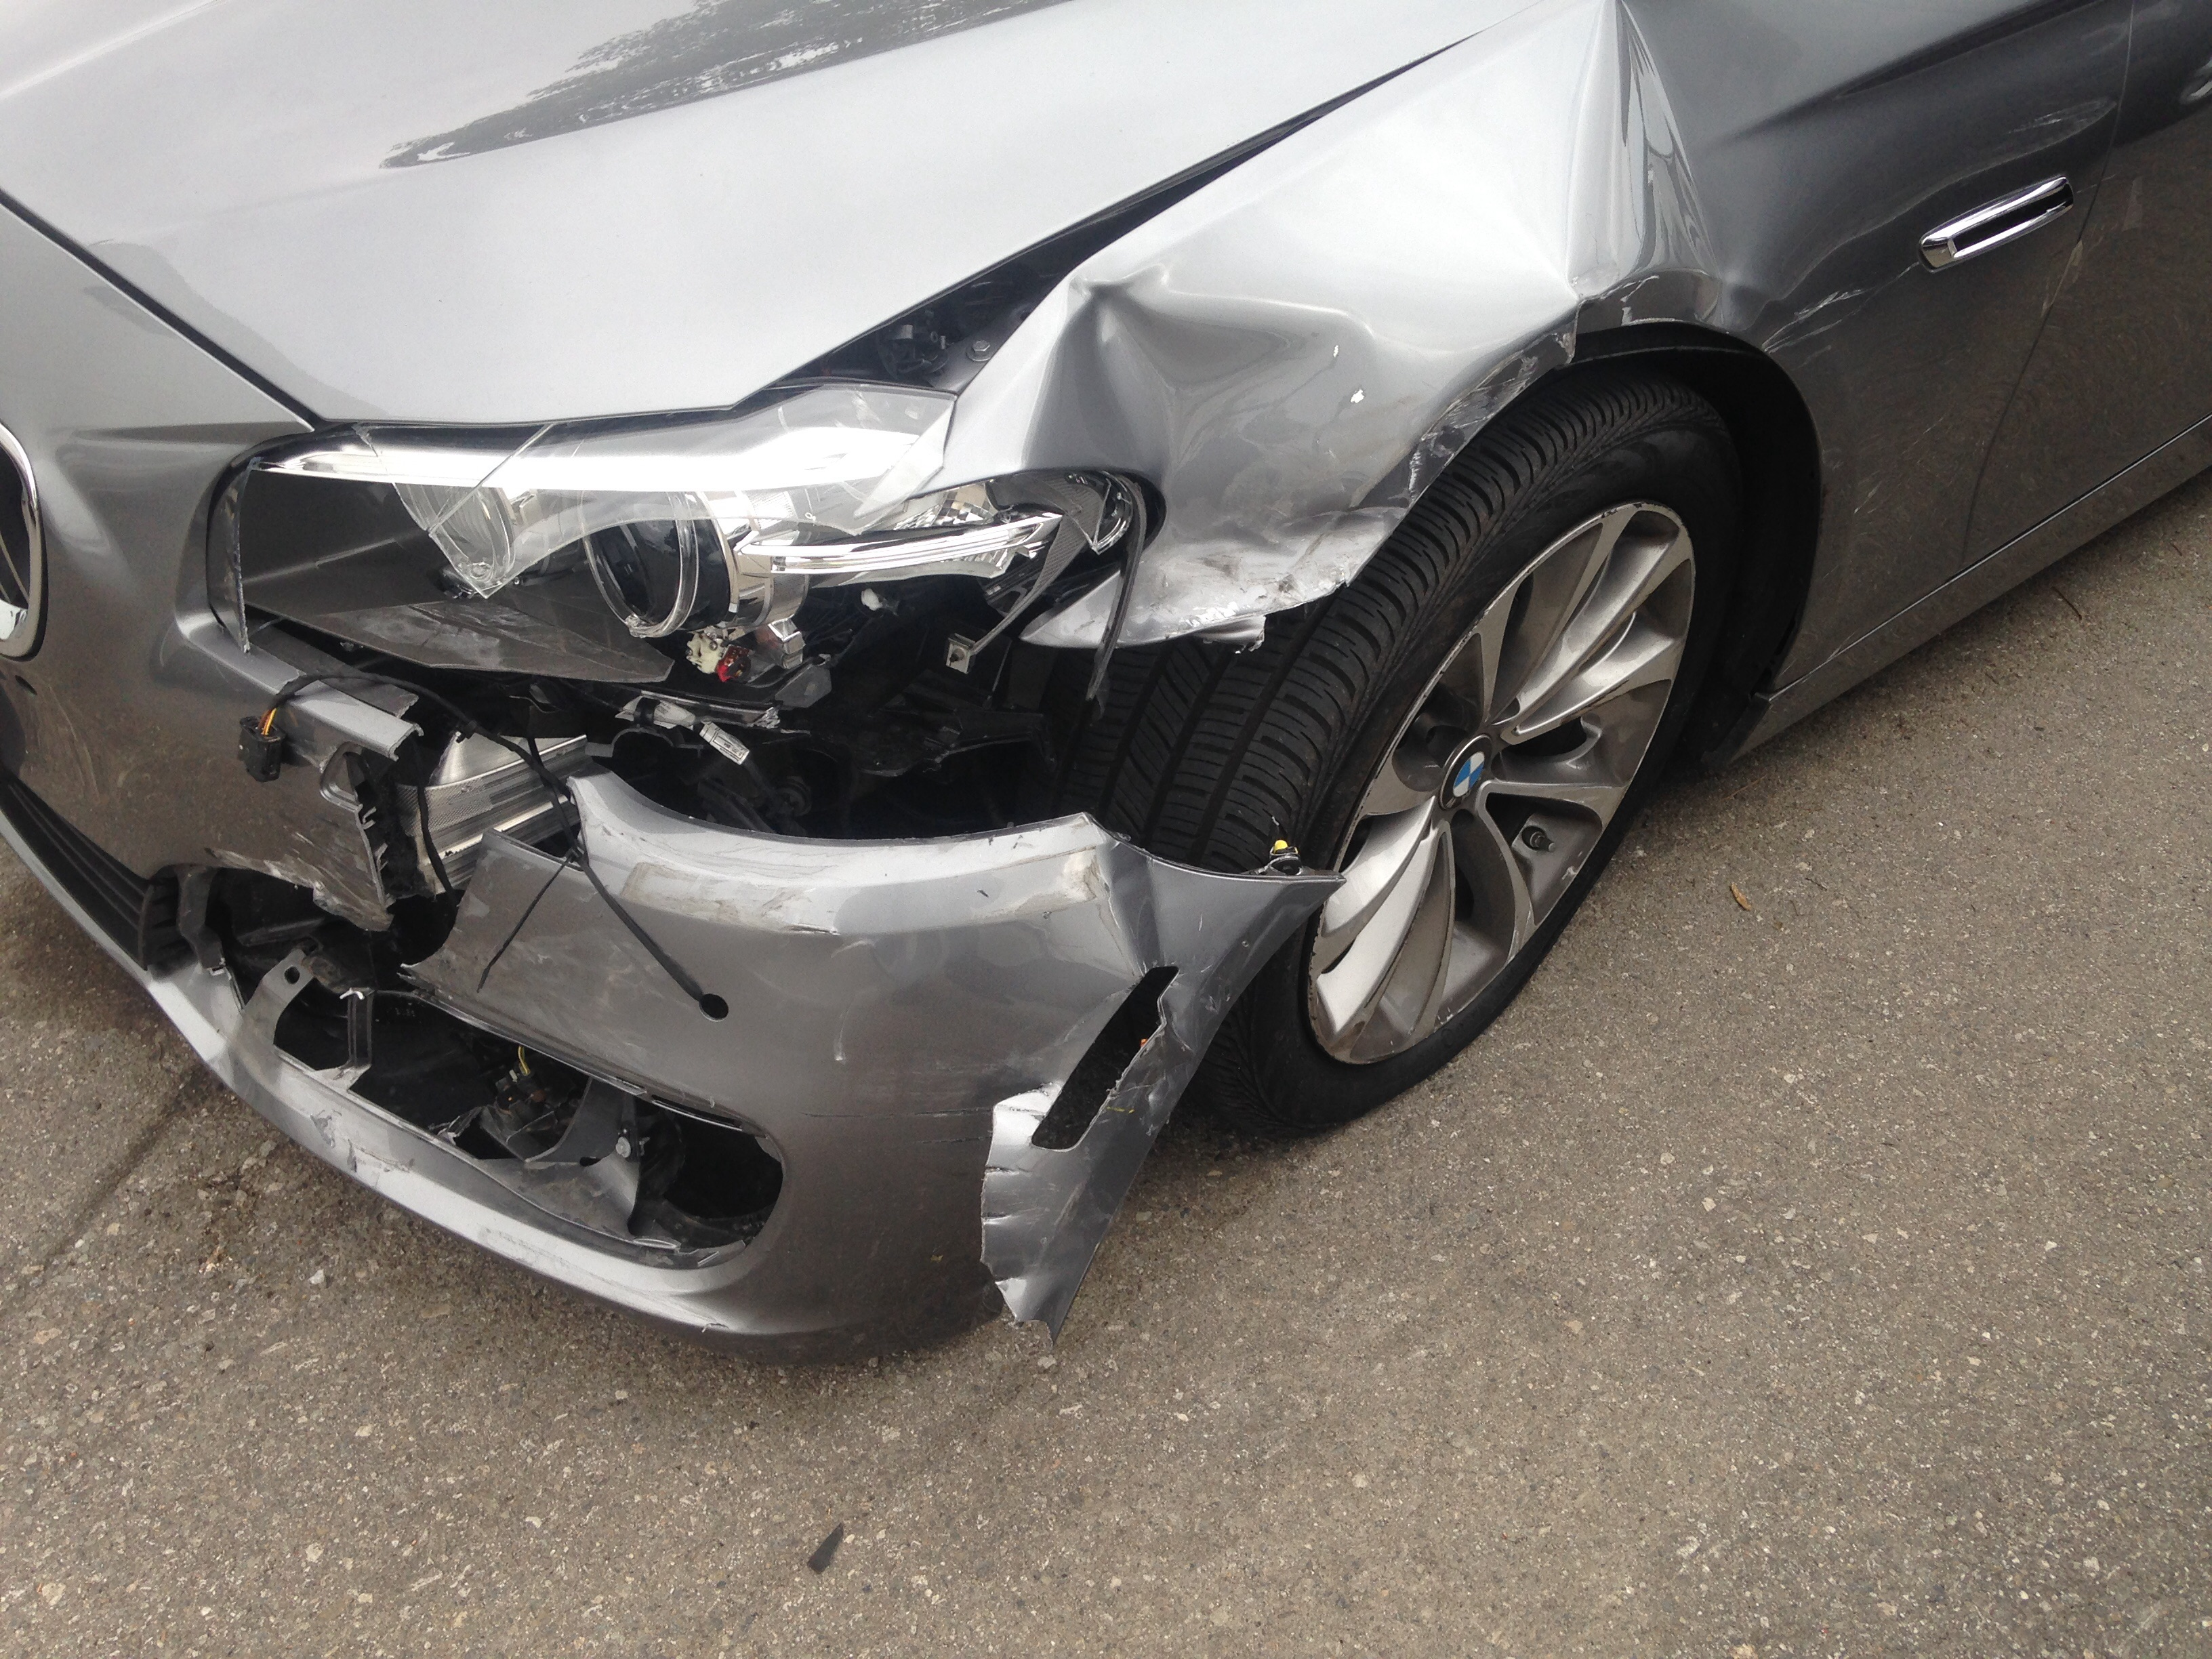 Uncategorized pictures of car accidents bad car - I Know Some Of You Guys Like To See This Stuff So Here Is A F30 With A Little Front Accident Not To Bad On Damage Front Bumper Headlight And Left